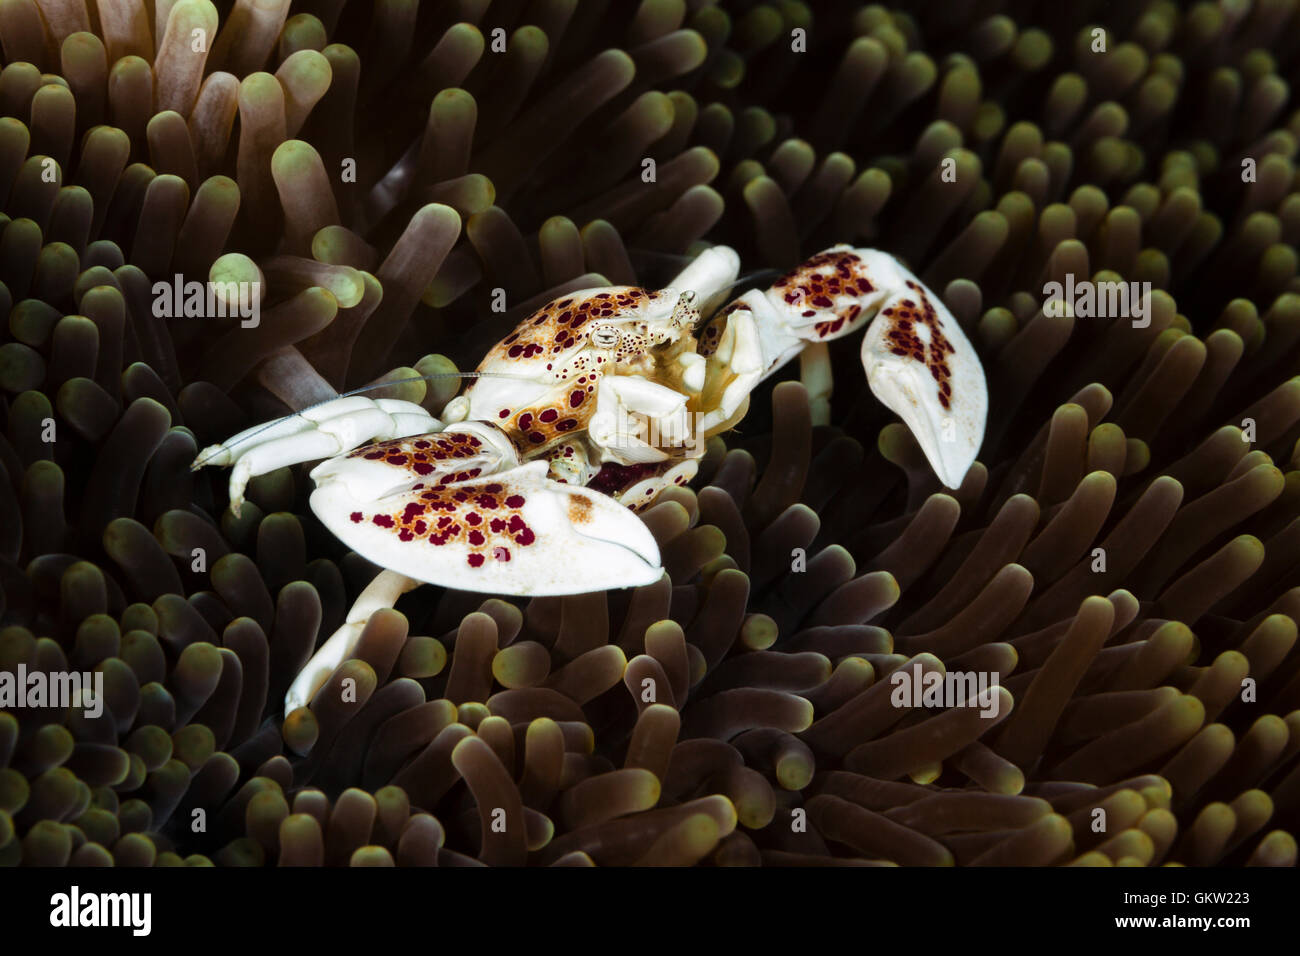 Porcelain Crab in Sea Anemone, Neopetrolisthes oshimai, Ambon, Moluccas, Indonesia Stock Photo